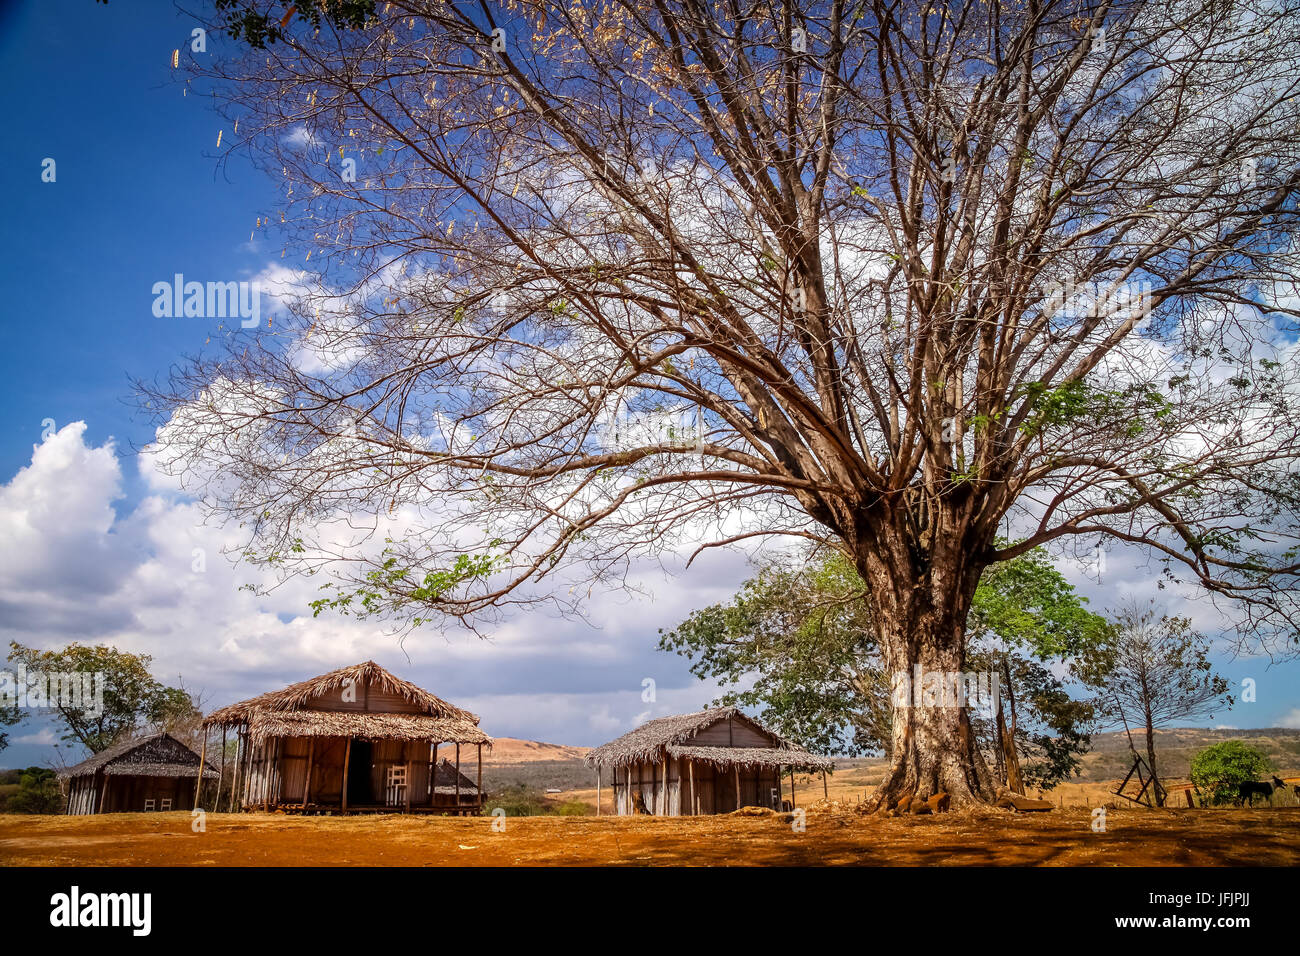 Small malagasy village - Stock Image